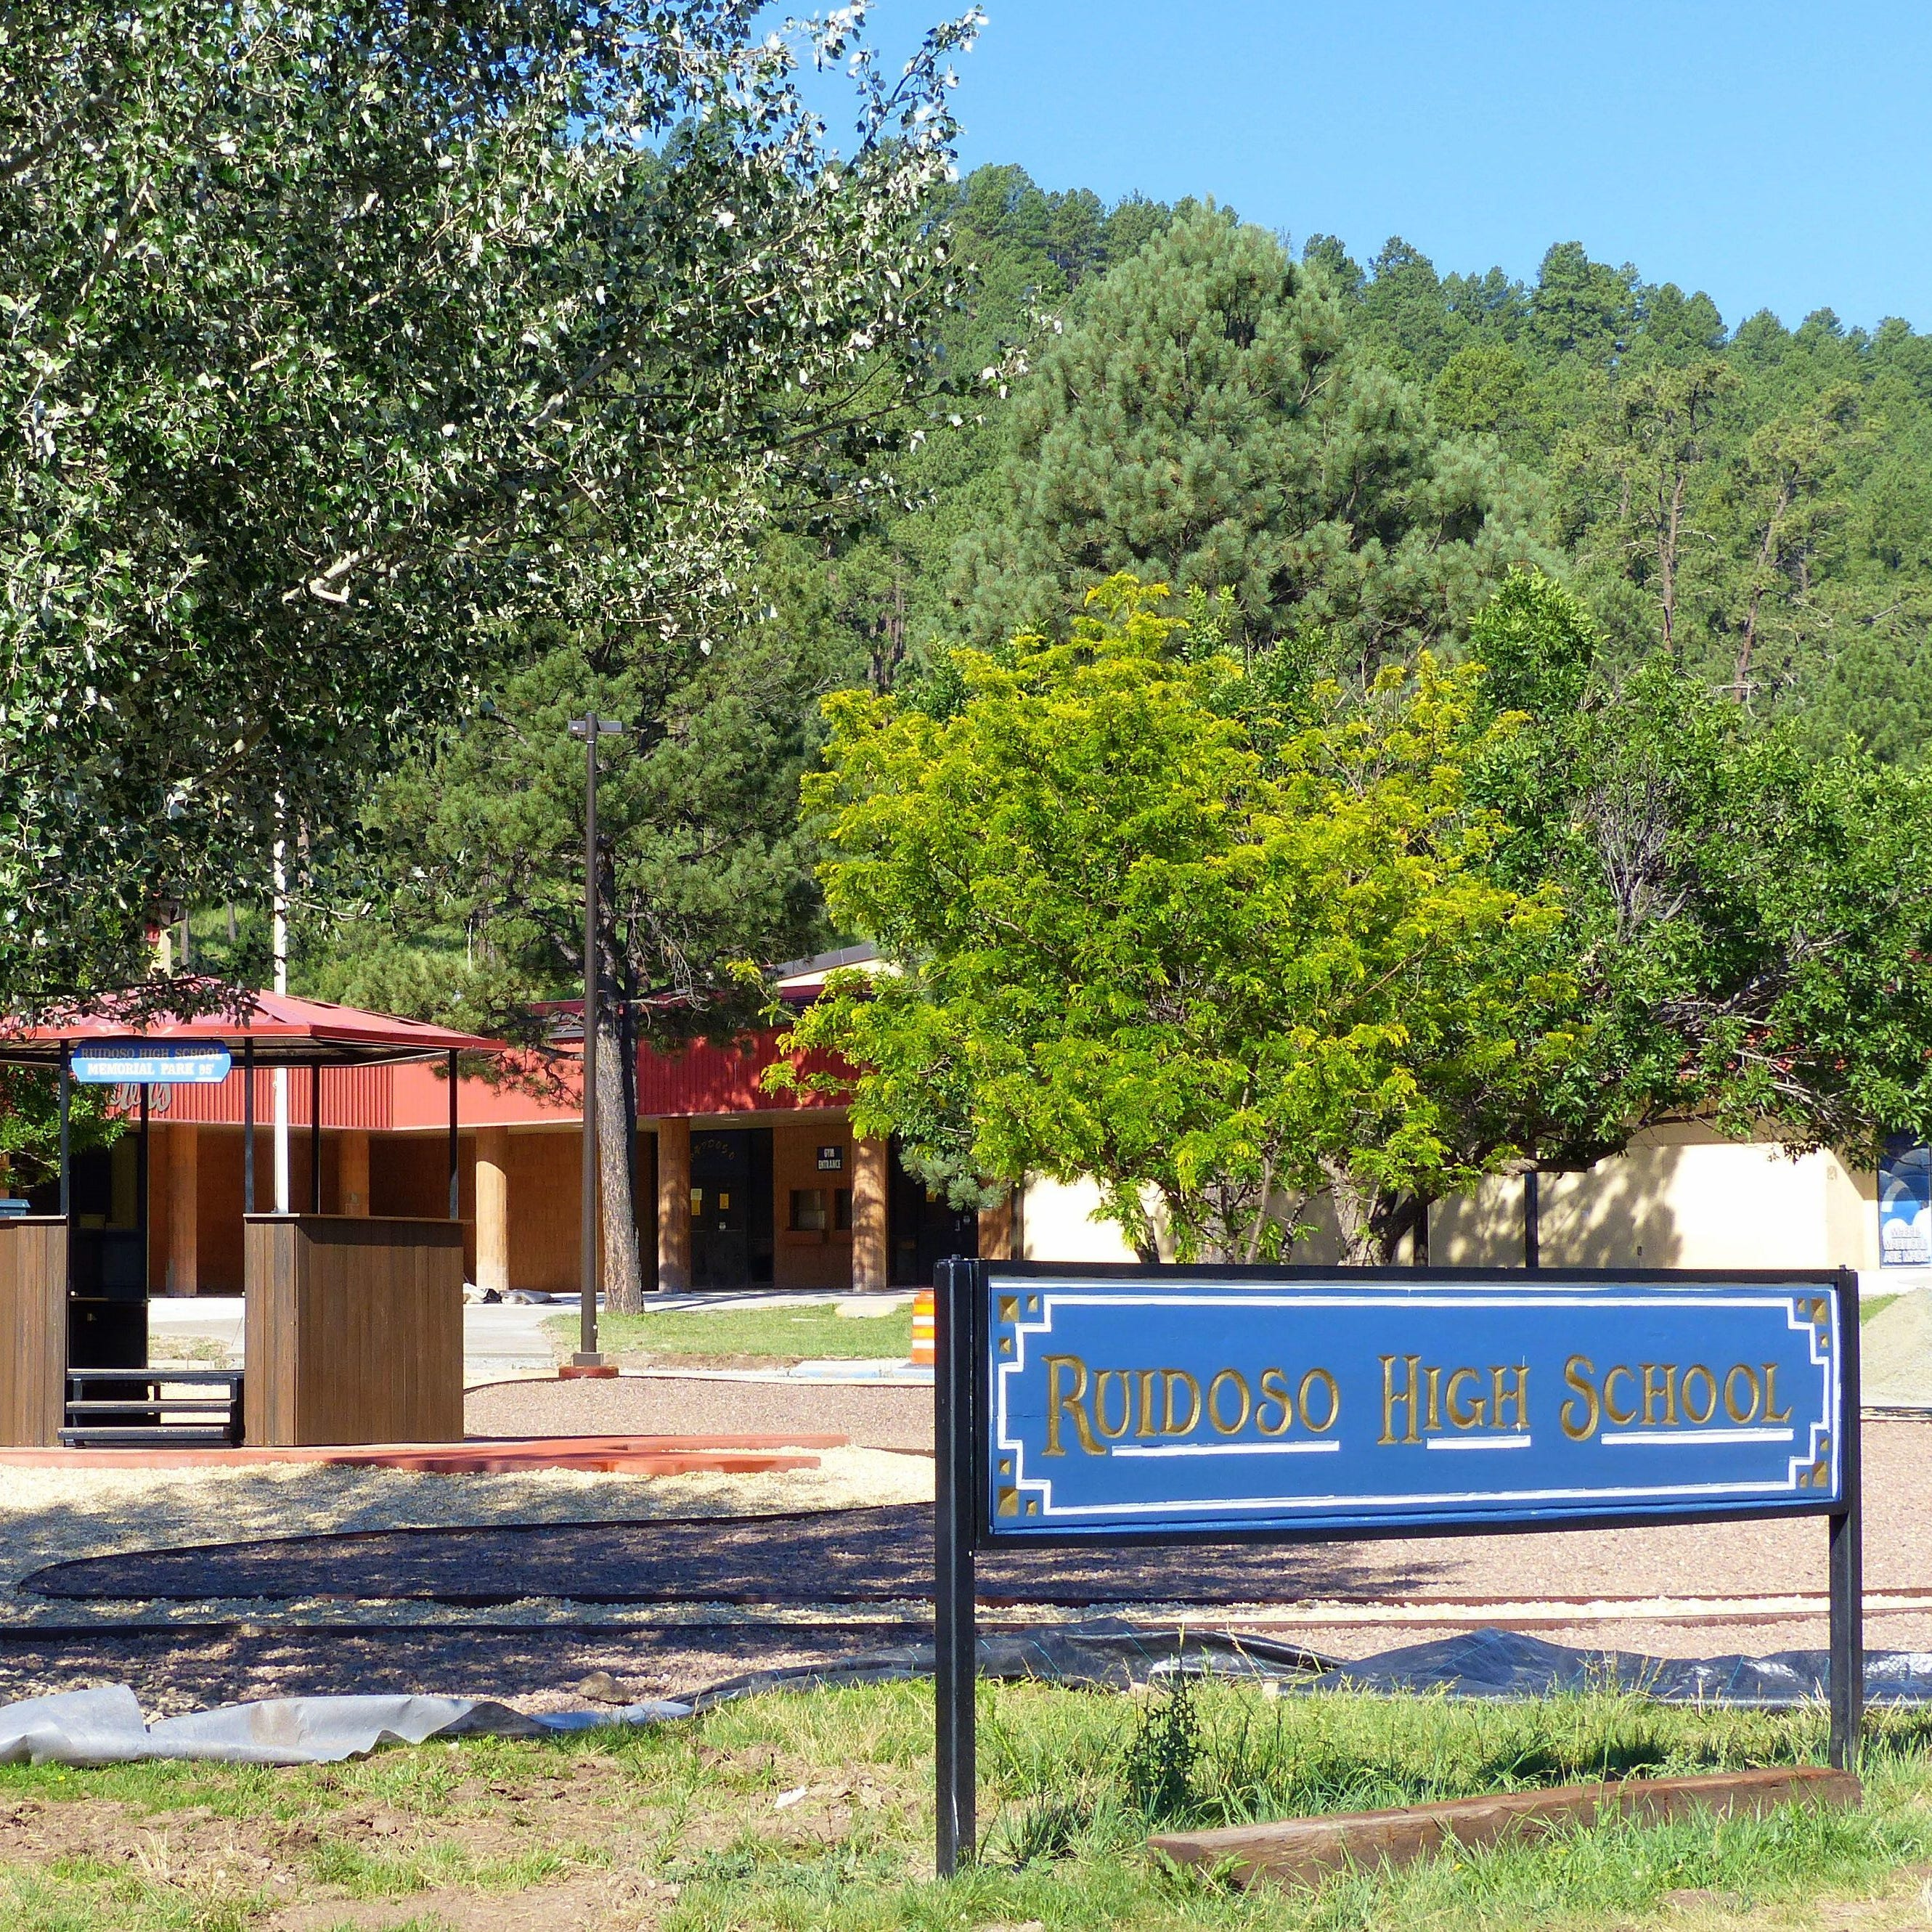 Early Academy will provide college opportunities to Ruidoso High students